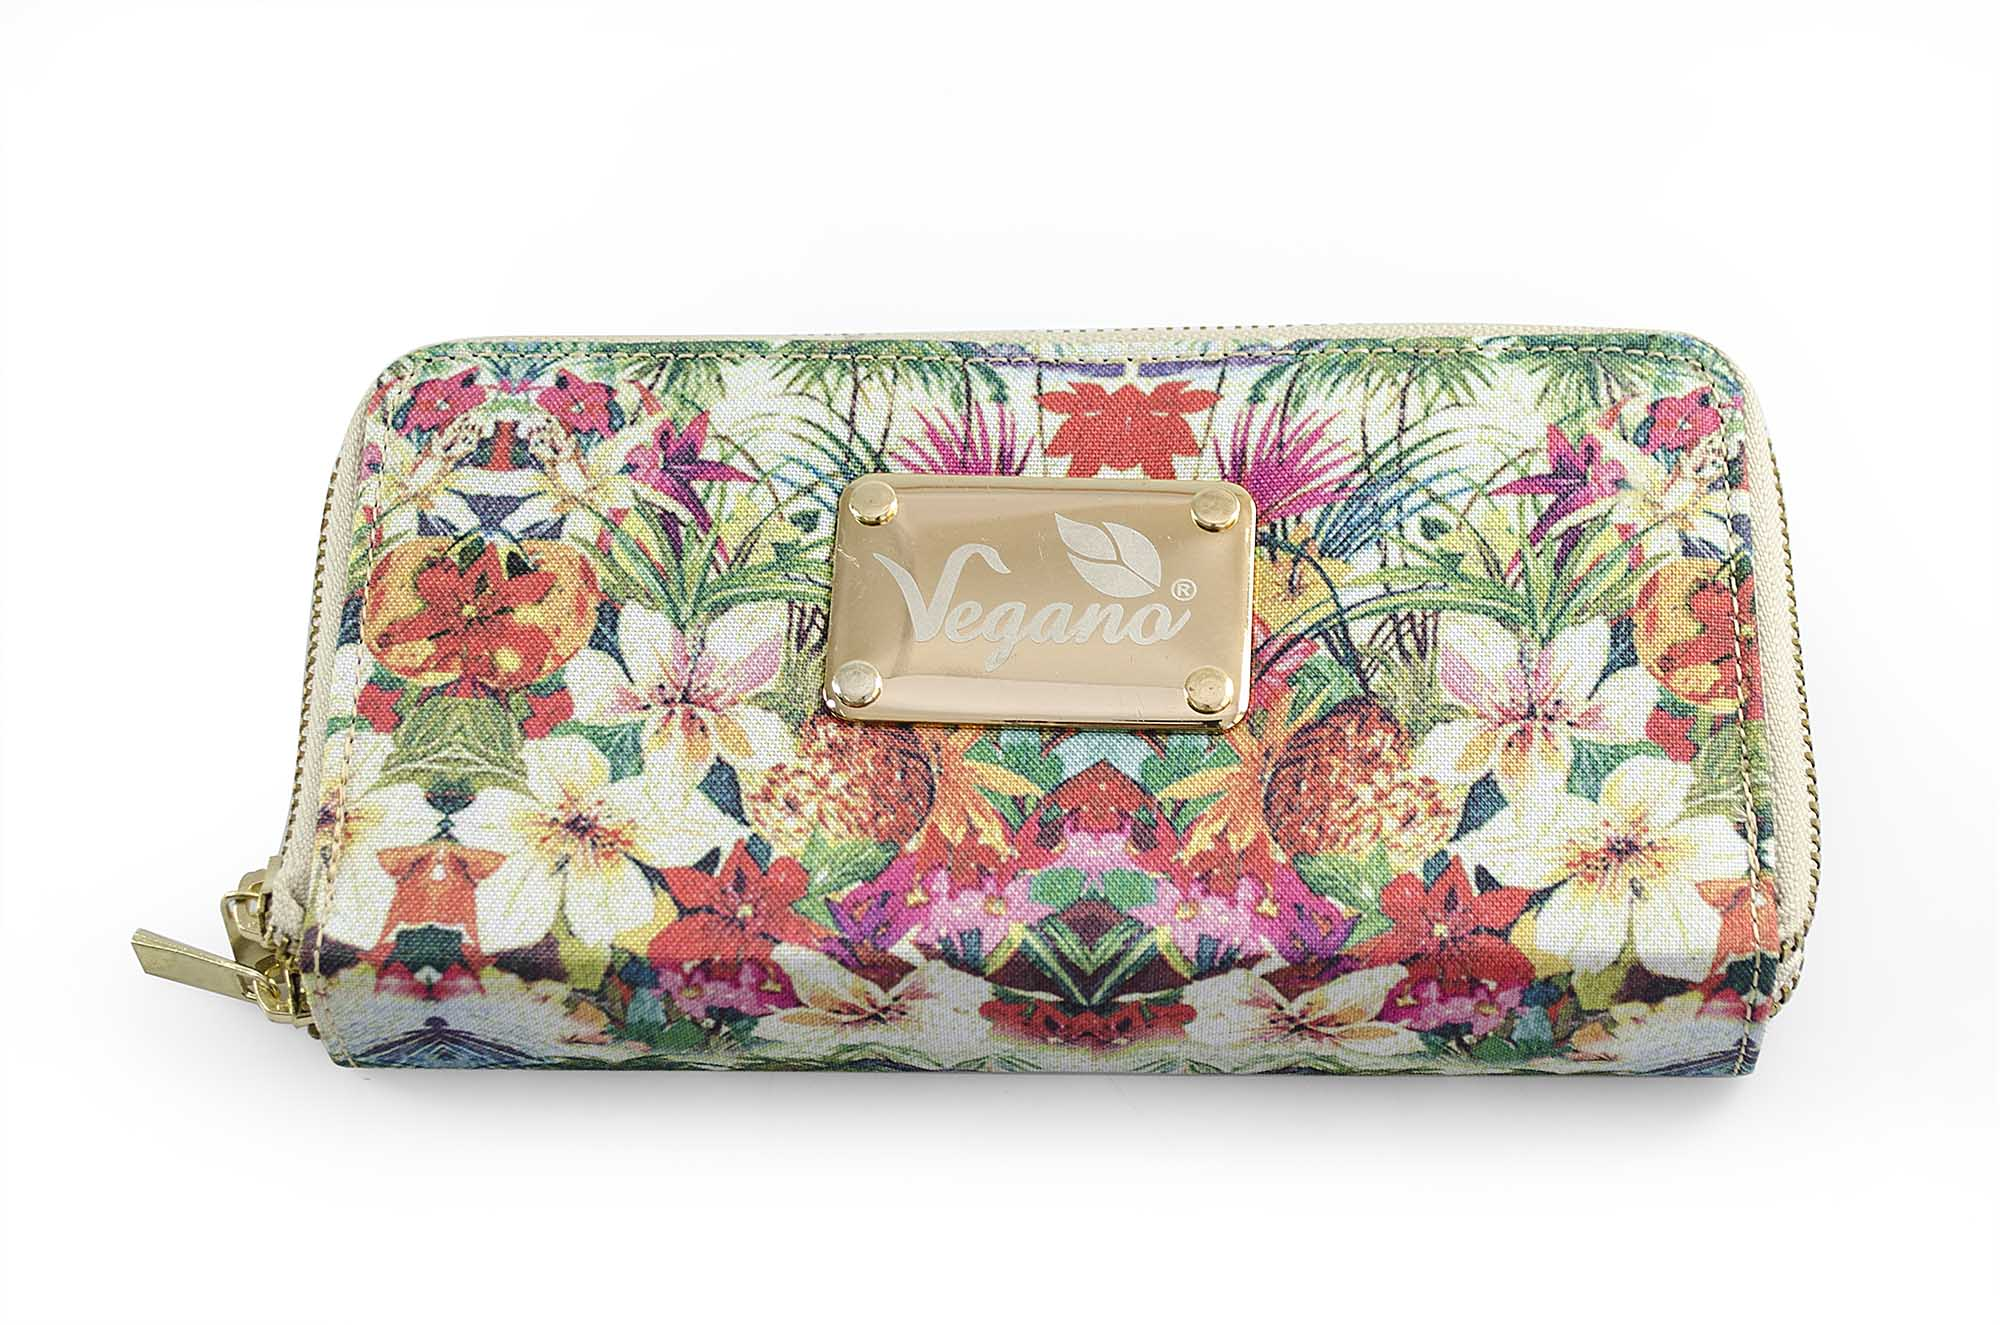 Carteira Vegano Shoes Candytuft Floral Rosa